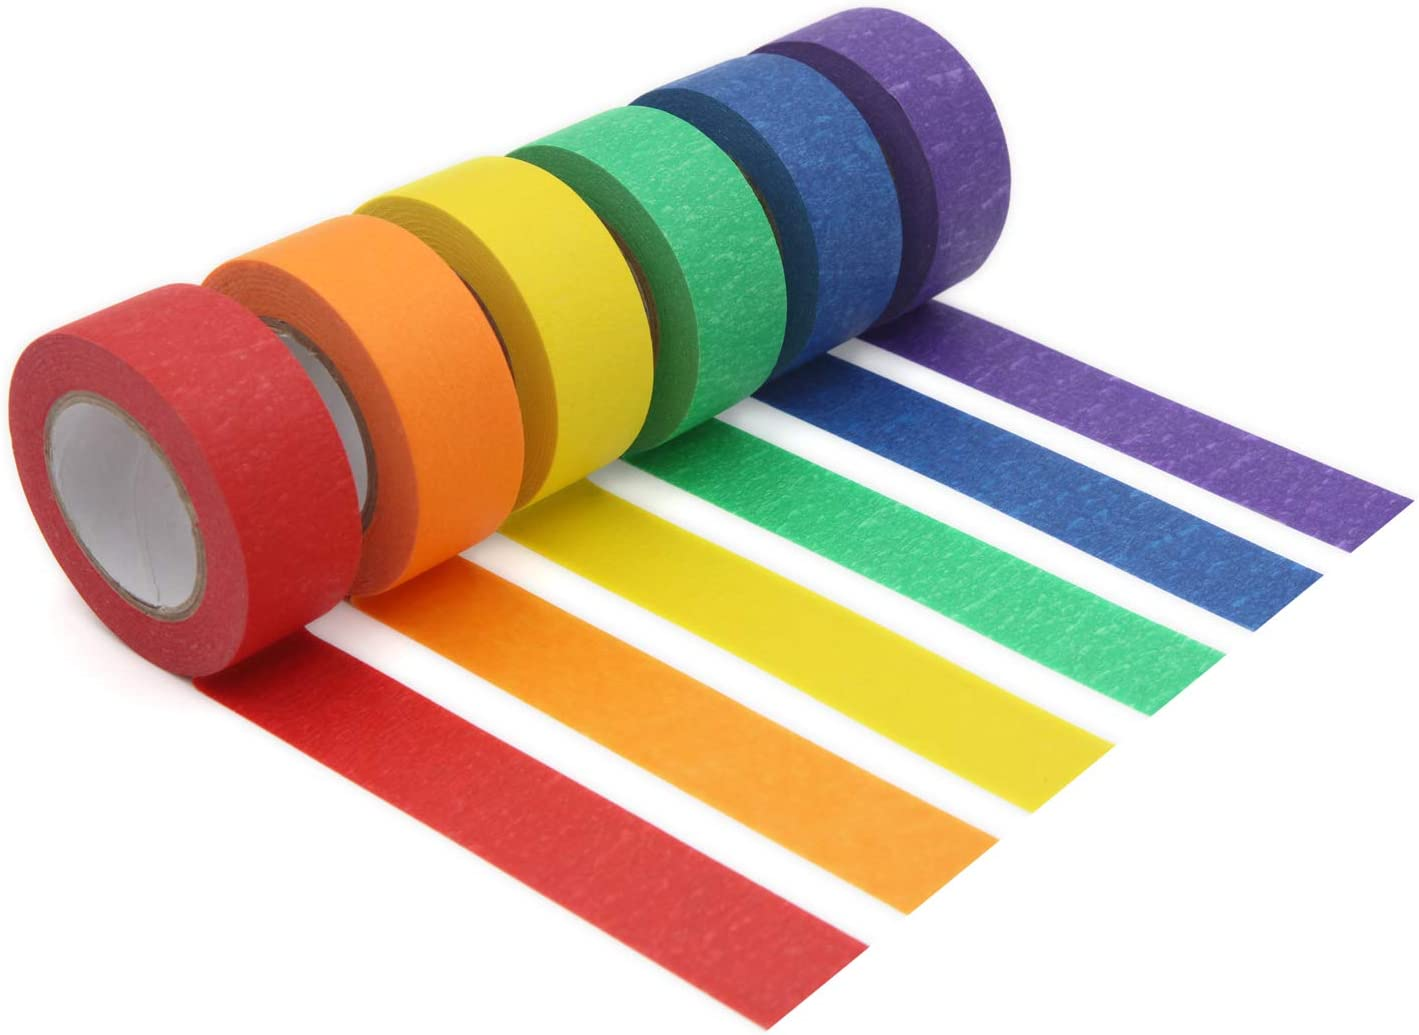 Colored Masking Tape, Colored Painters Tape for Arts & Crafts, Labeling or Coding - Art Supplies for Kids - 6 Different Color Rolls - Masking Tape 1 Inch x 13 Yards (2.4cm X 12m)